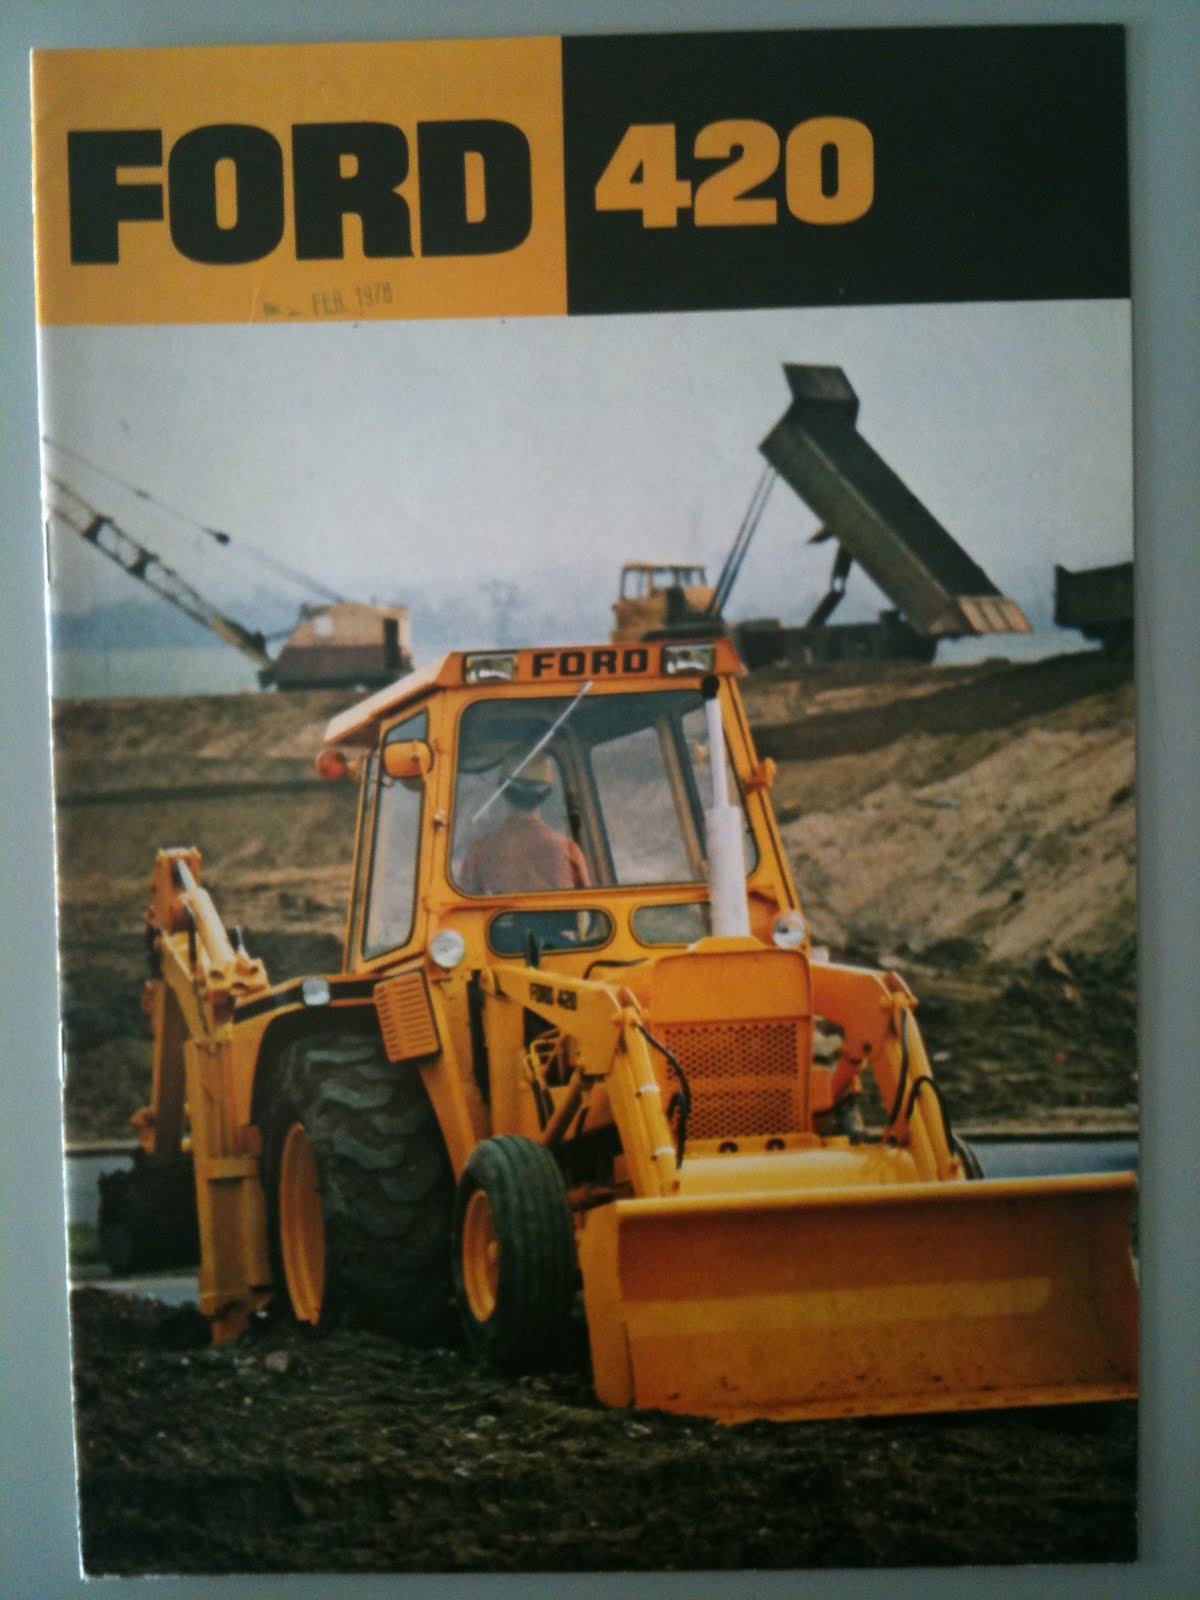 1978 Ford 420 Tractor submited images.